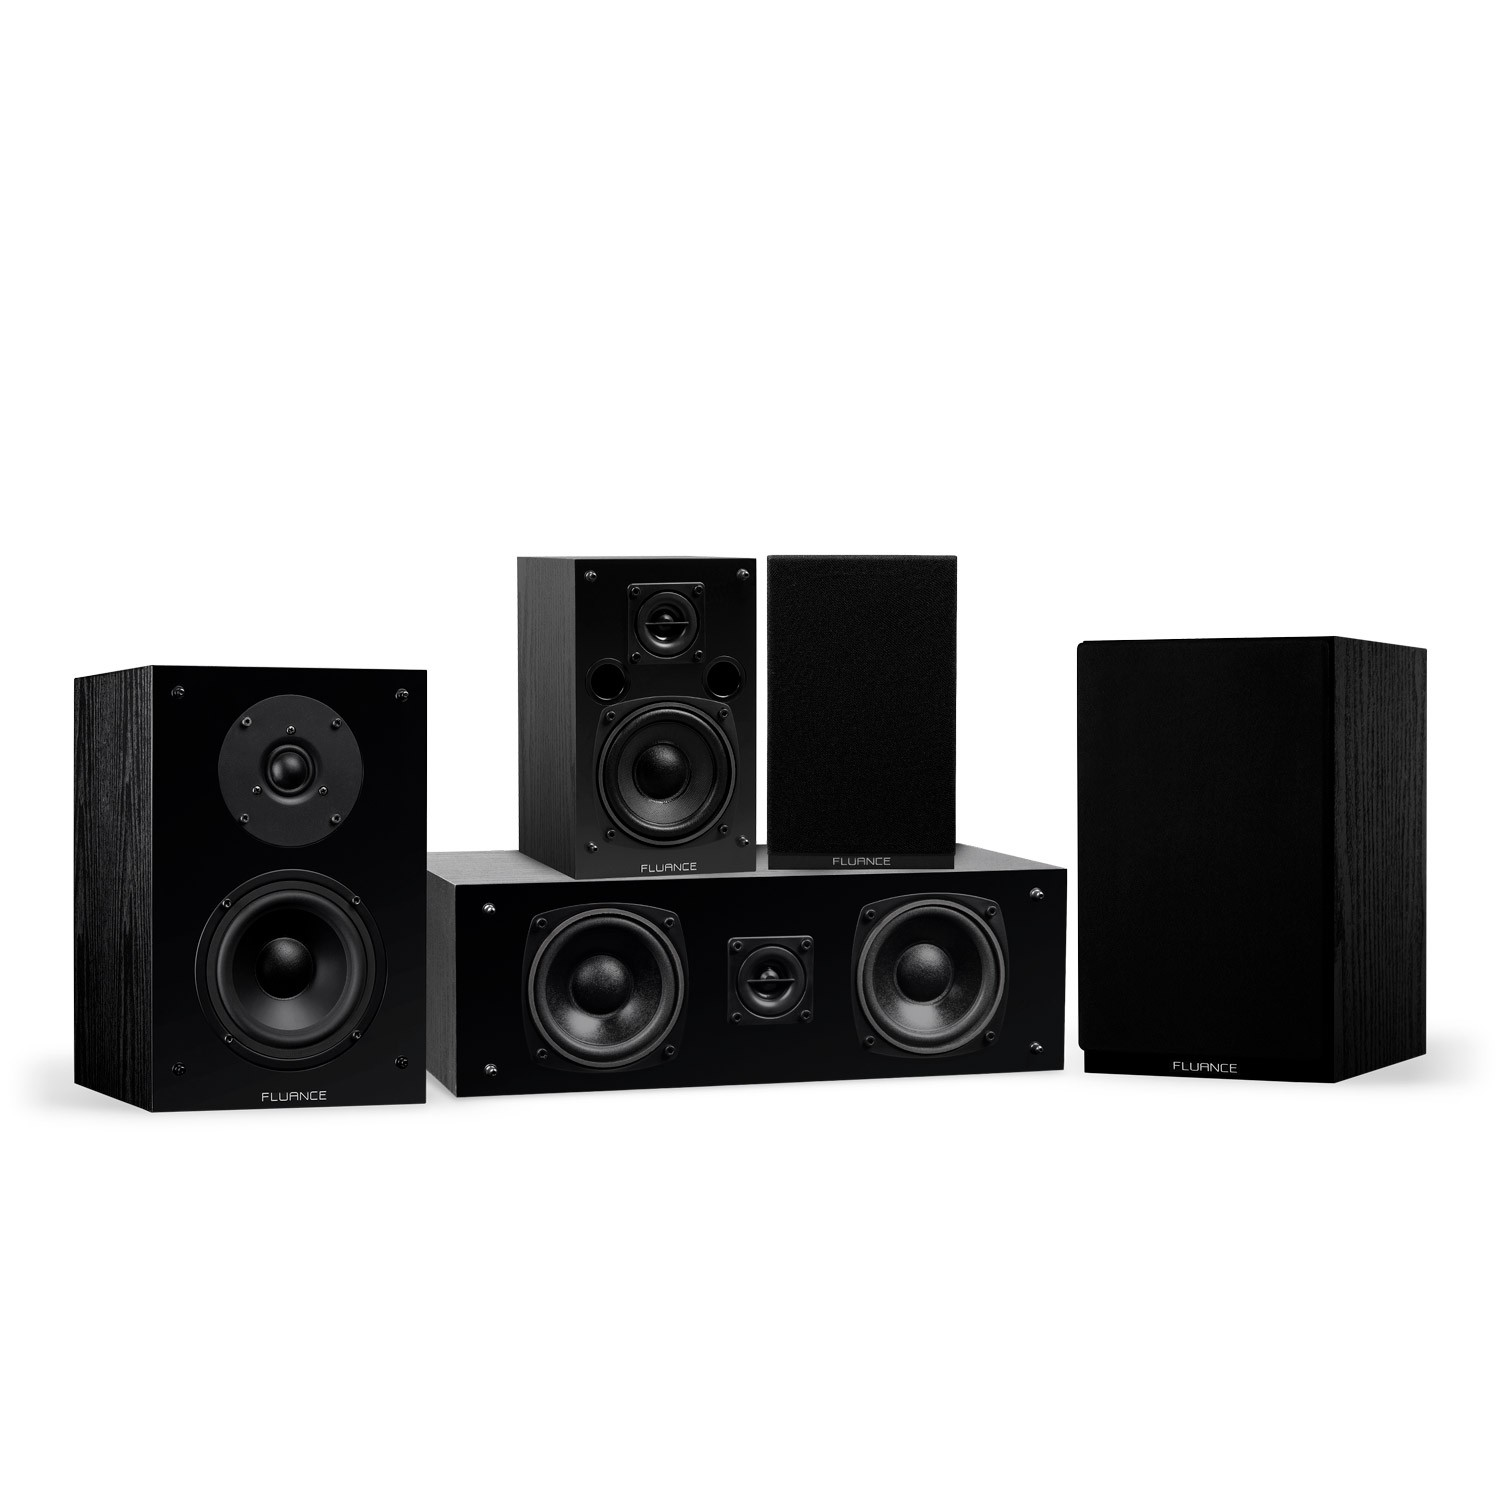 Classic Elite Series Compact Surround Sound Home Theater 5.0 Channel Speaker System - Black Ash